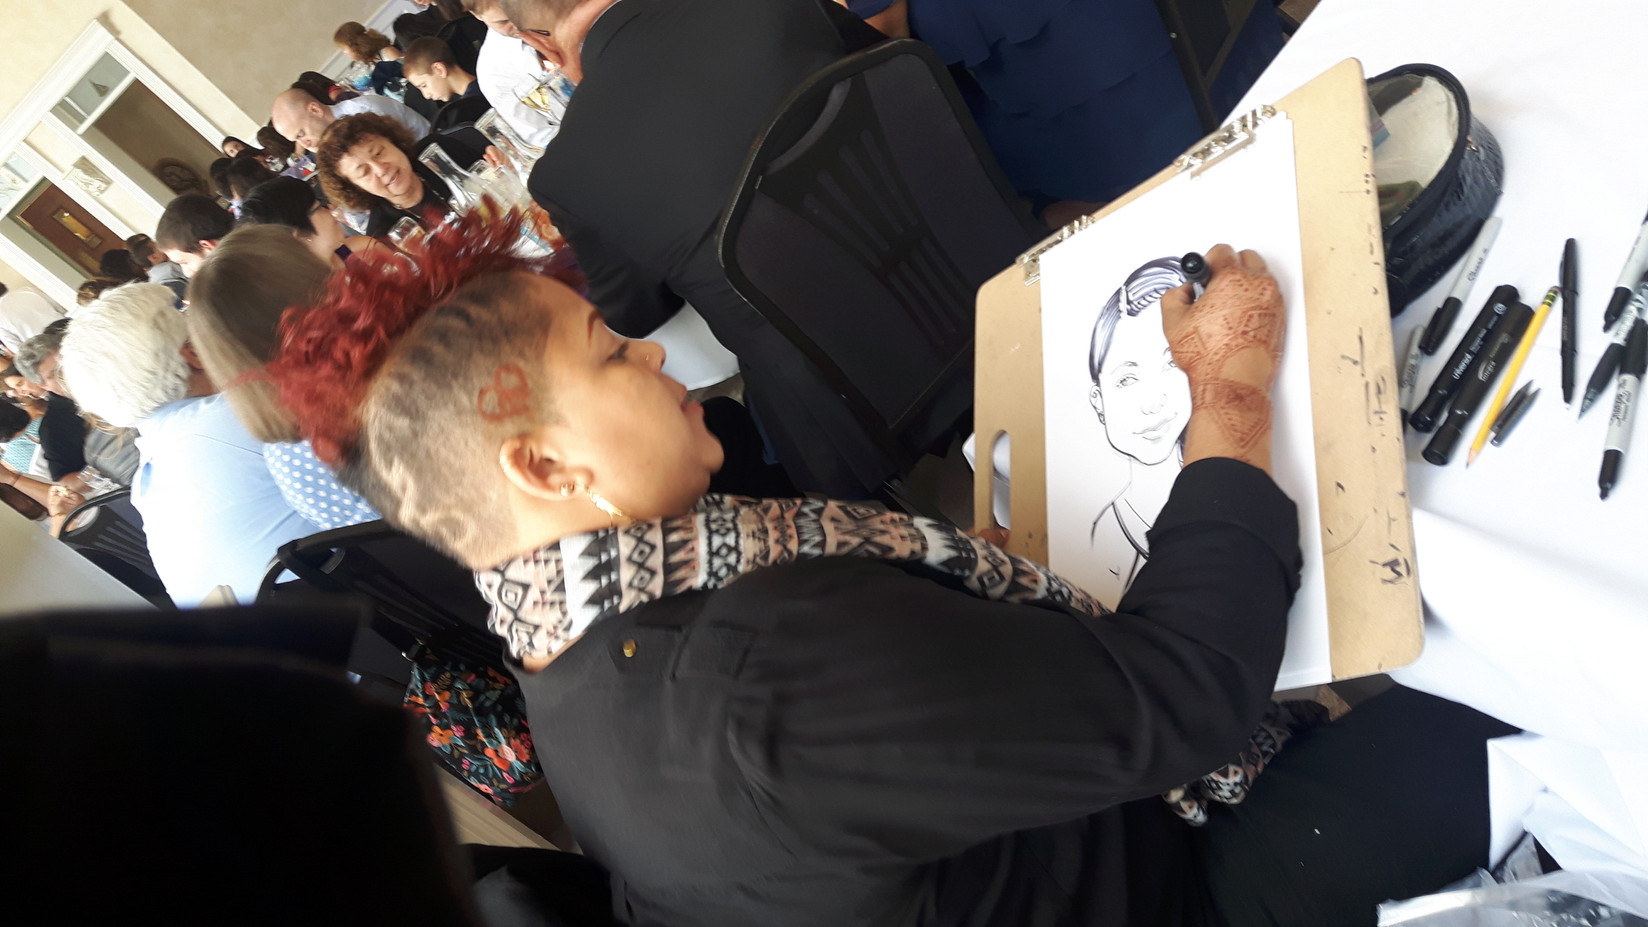 Magical-Memories-Cartoonist-Drawing-For-Event.jpg